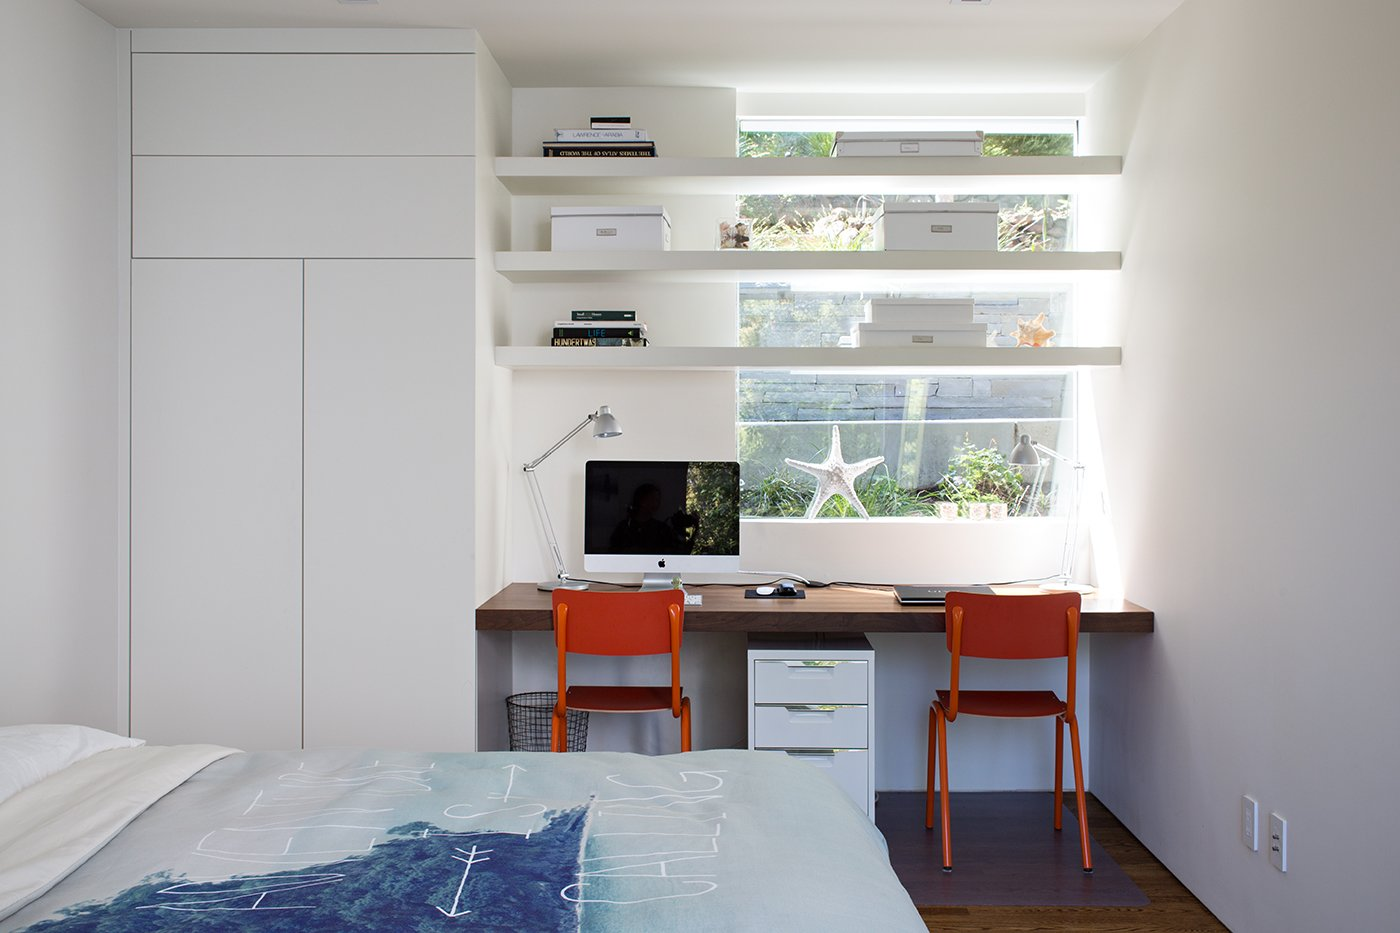 Minimal Modern Addition  Sebastian and Tanja DiGrande's quest for natural light and open, modern design led them to Klopf Architecture in San Francisco. Working hand-in-hand with homeowner/designer Tanja DiGrande, Klopf collaborated on a modern addition to the rear of a traditional-style home. The idea was to depart from the original style completely to draw a distinction between the original house and any later additions, as well as observe a very minimal, clean, gallery-like modern style against which changing daylight, art, furniture, and of course the people provide the color and motion.  With its dark gray stuccoed walls, dark steel railing, and floor-to-ceiling windows, the exterior of the addition is at the same time an open, modern box as well as a receding volume that acts almost as a backdrop for the house, receding visually out of respect for the original home. From the interior, windows bring in nature and views from all around the lush property. They also allow views of the original house. Up on the roof deck the views magnify. The owners use a boom and crank to bring up food and drinks when entertaining!  Inside, the simple clean-lined spaces showcase the couple's minimal, modern taste. The open bathroom epitomizes the clean, minimal style of the addition. On the exterior, steel elements bring a more industrial modern feeling to the addition from the rear.